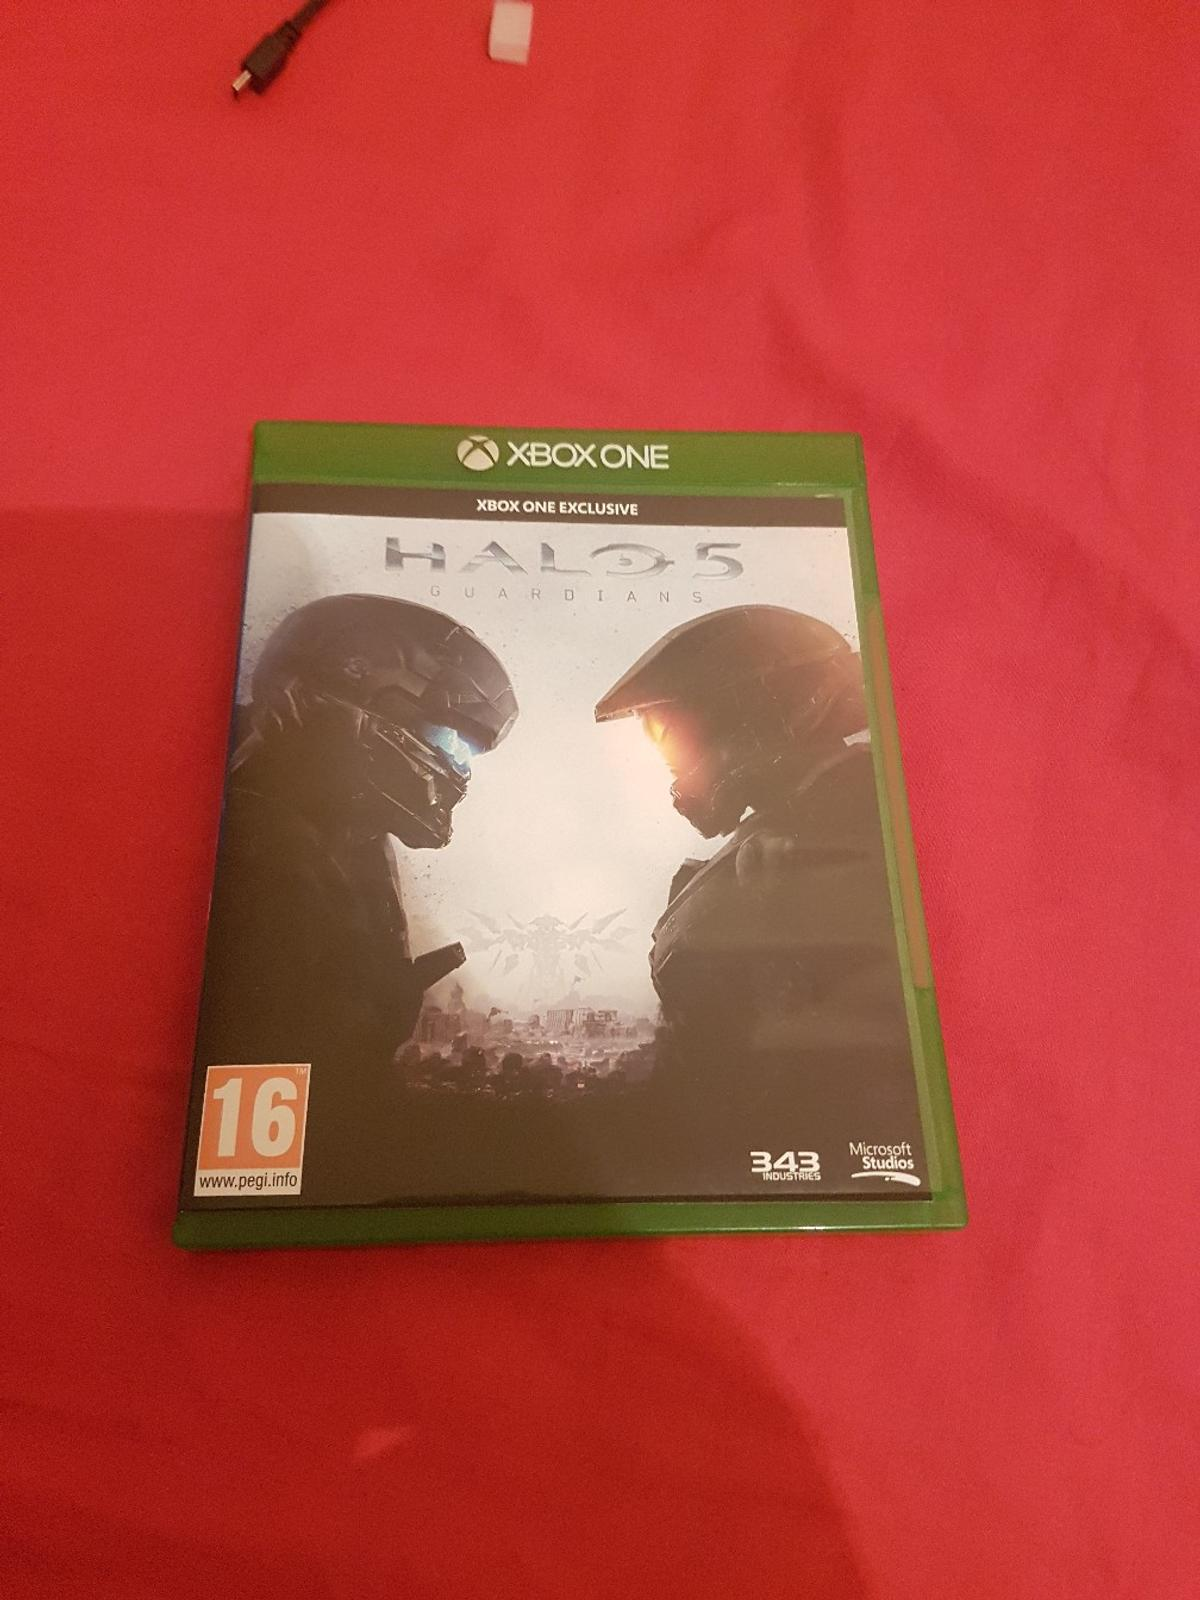 Xbox One|1TB| Halo 5 in WC1B London for £225 00 for sale